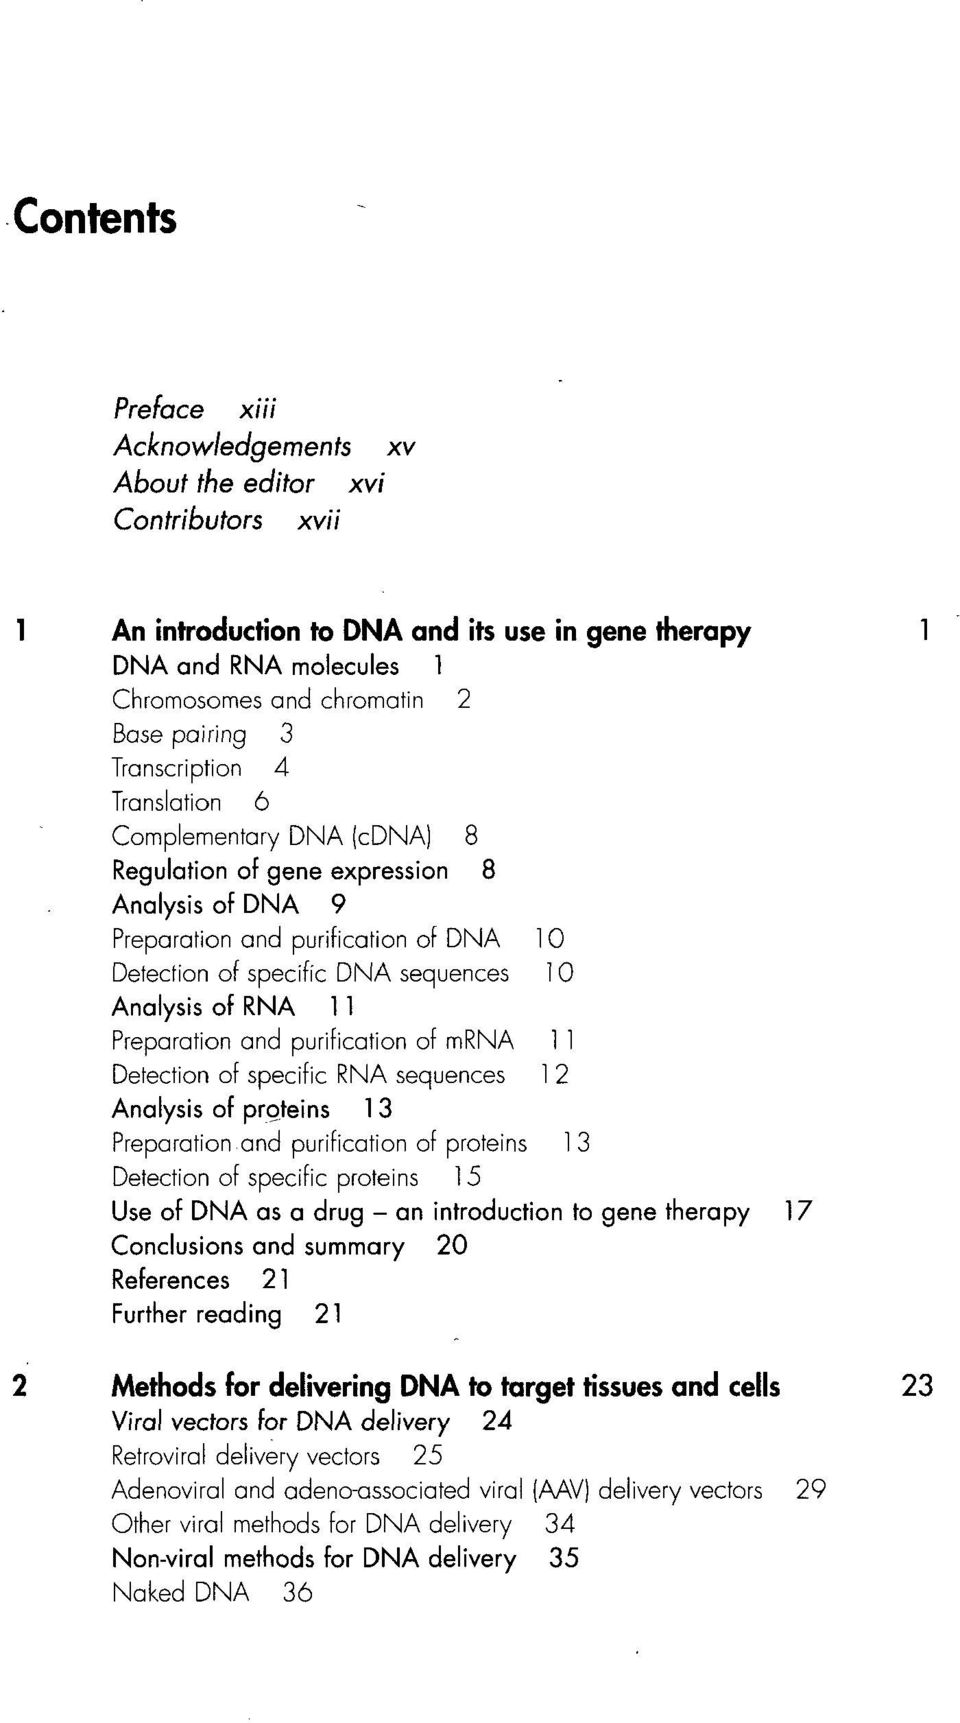 RNA 11 Preparation and purification of mrna 1 1 Detection of specific RNA sequences 1 2 Analysis of proteins 1 3 Preparation and purification of proteins 1 3 Detection of specific proteins 15 Use of